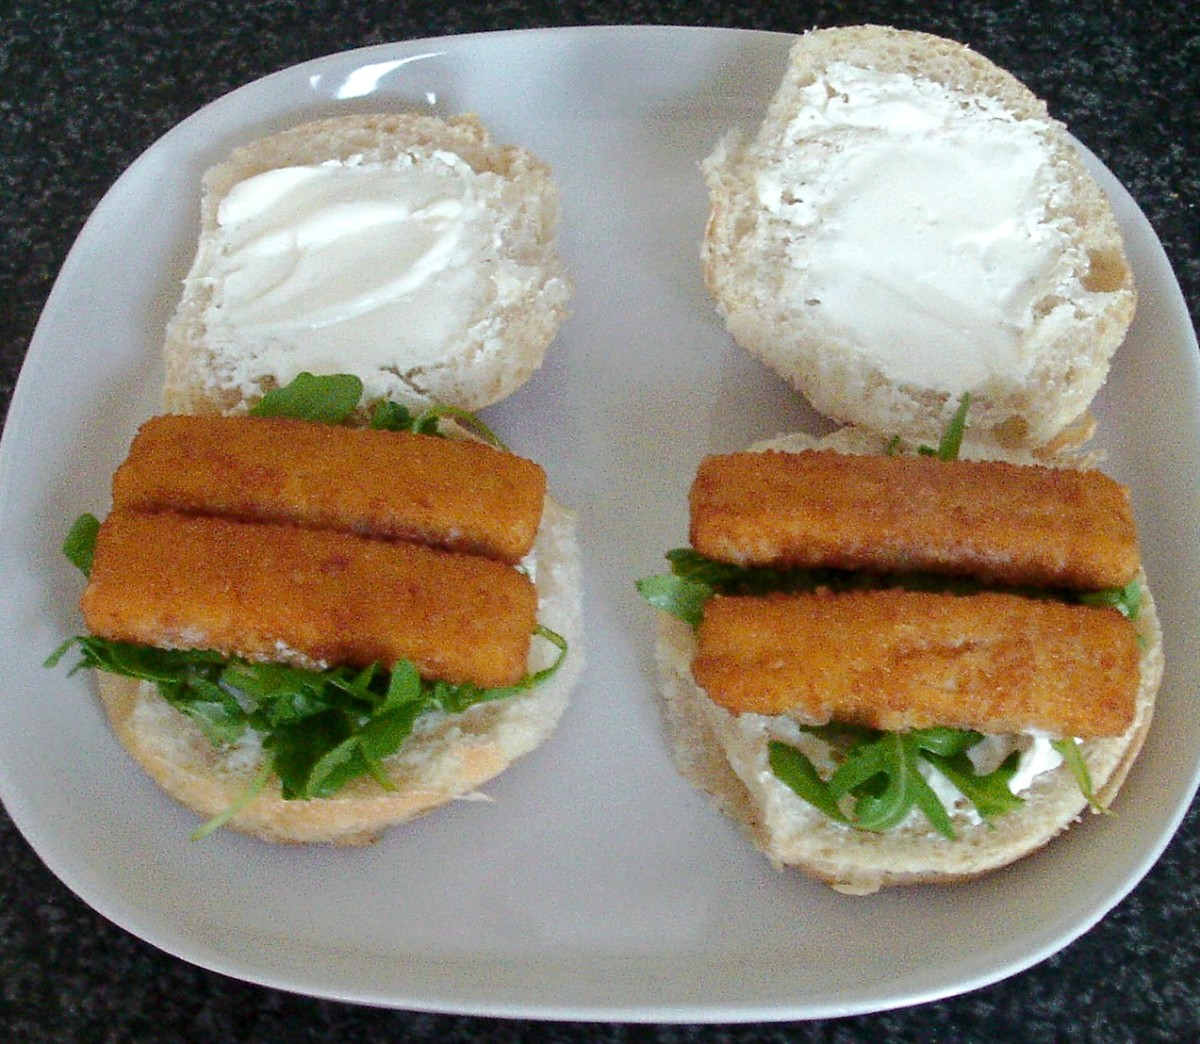 Fish fingers are laid on rocket beds